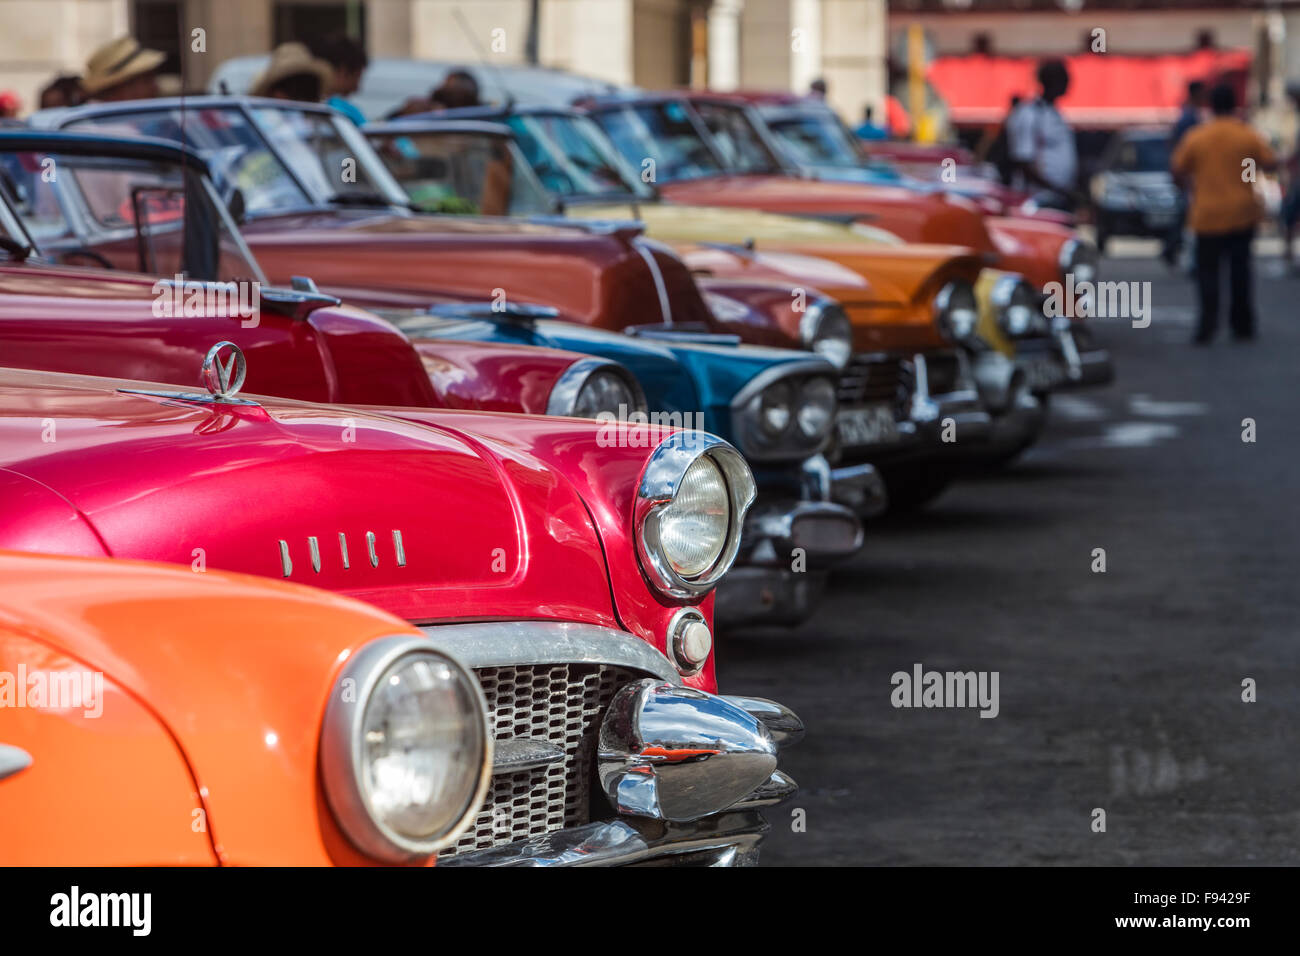 A Row Of Classic Cars In Old Havana Cuba Stock Photo Royalty